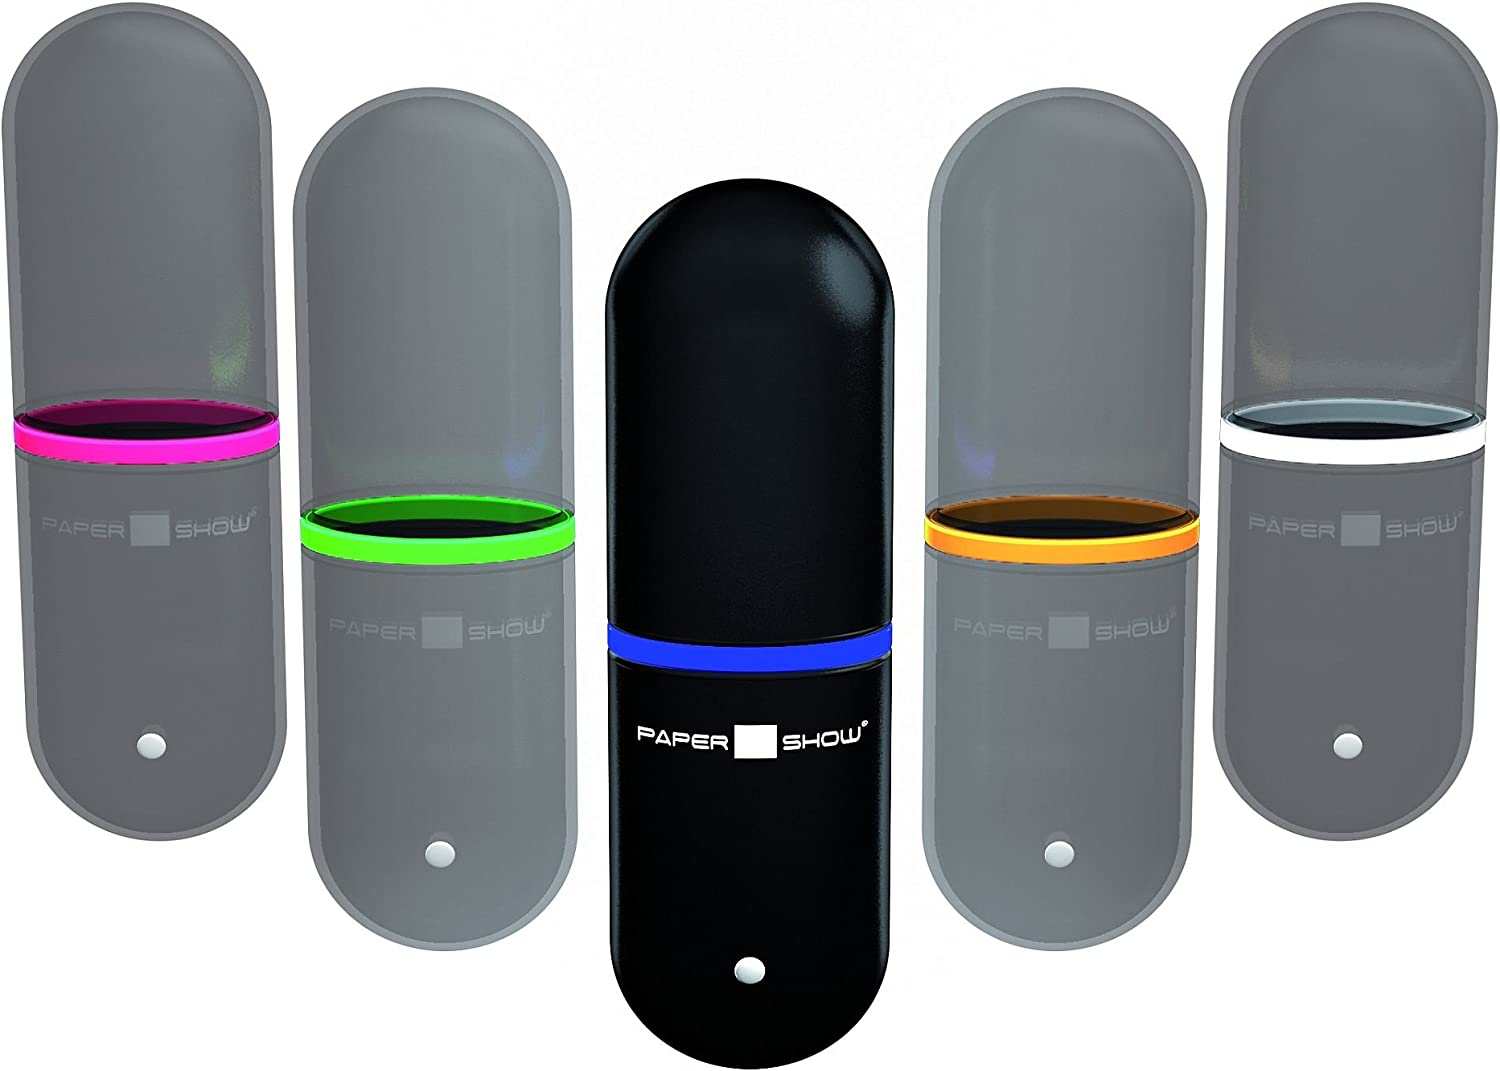 PaperShow USB Key Includes Set of 4 Color Rings